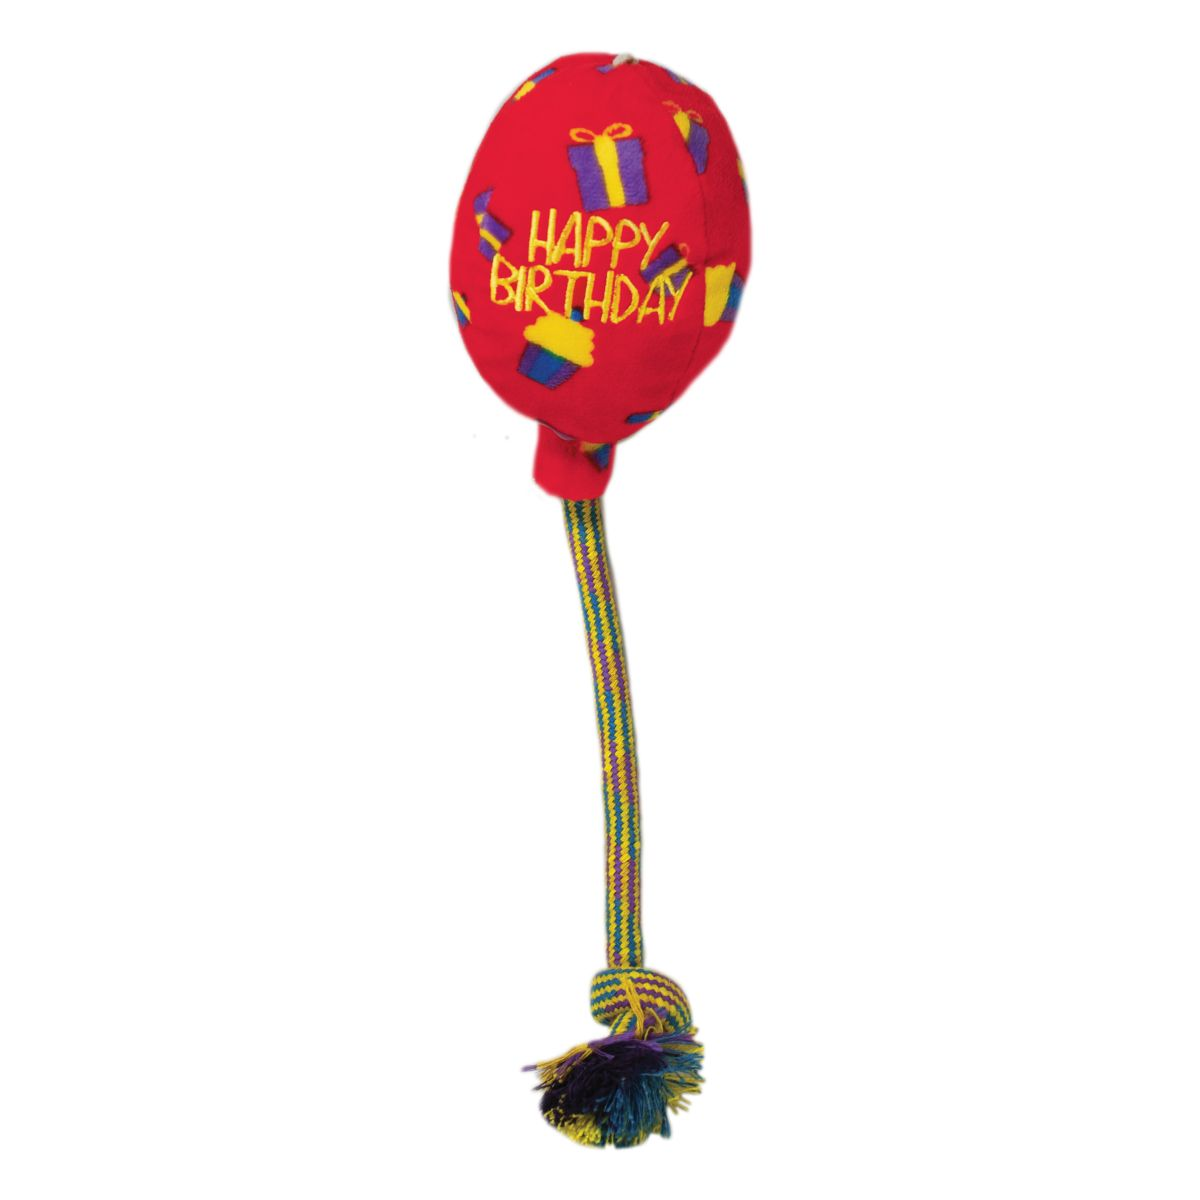 KO OCC.BIRTHDAY BALLOON RED M N 00001